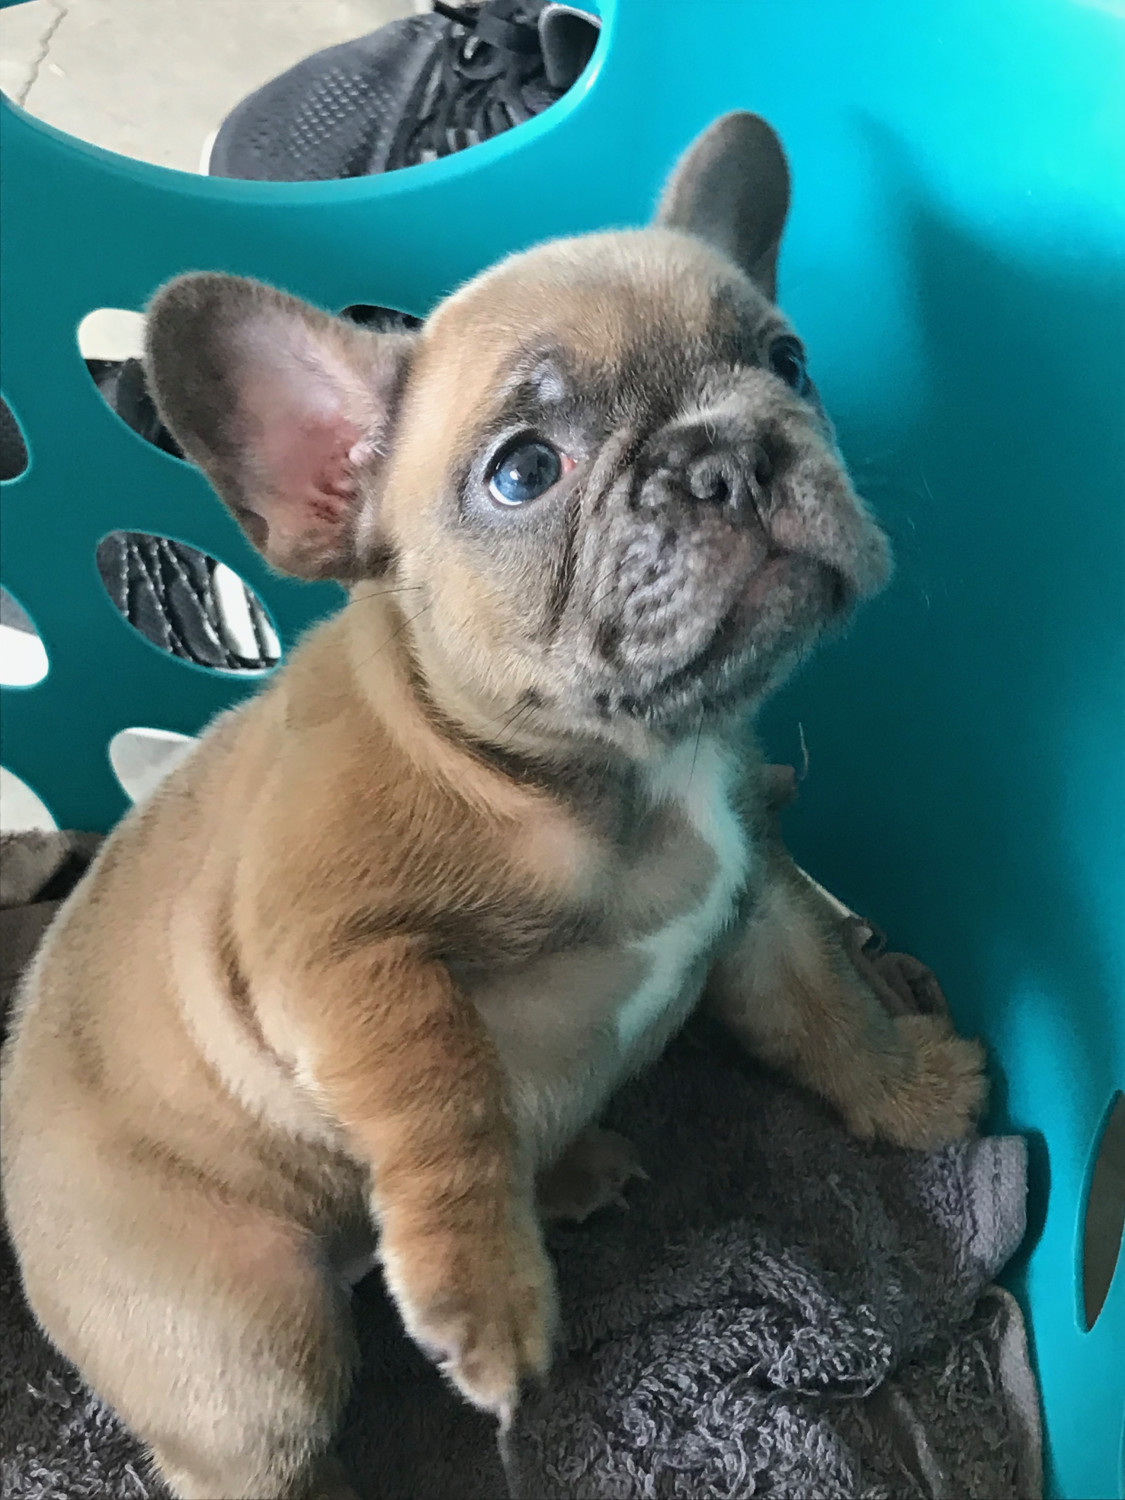 French Bulldog Puppies For Sale Near El Paso Tx 79934 Within 50 Miles